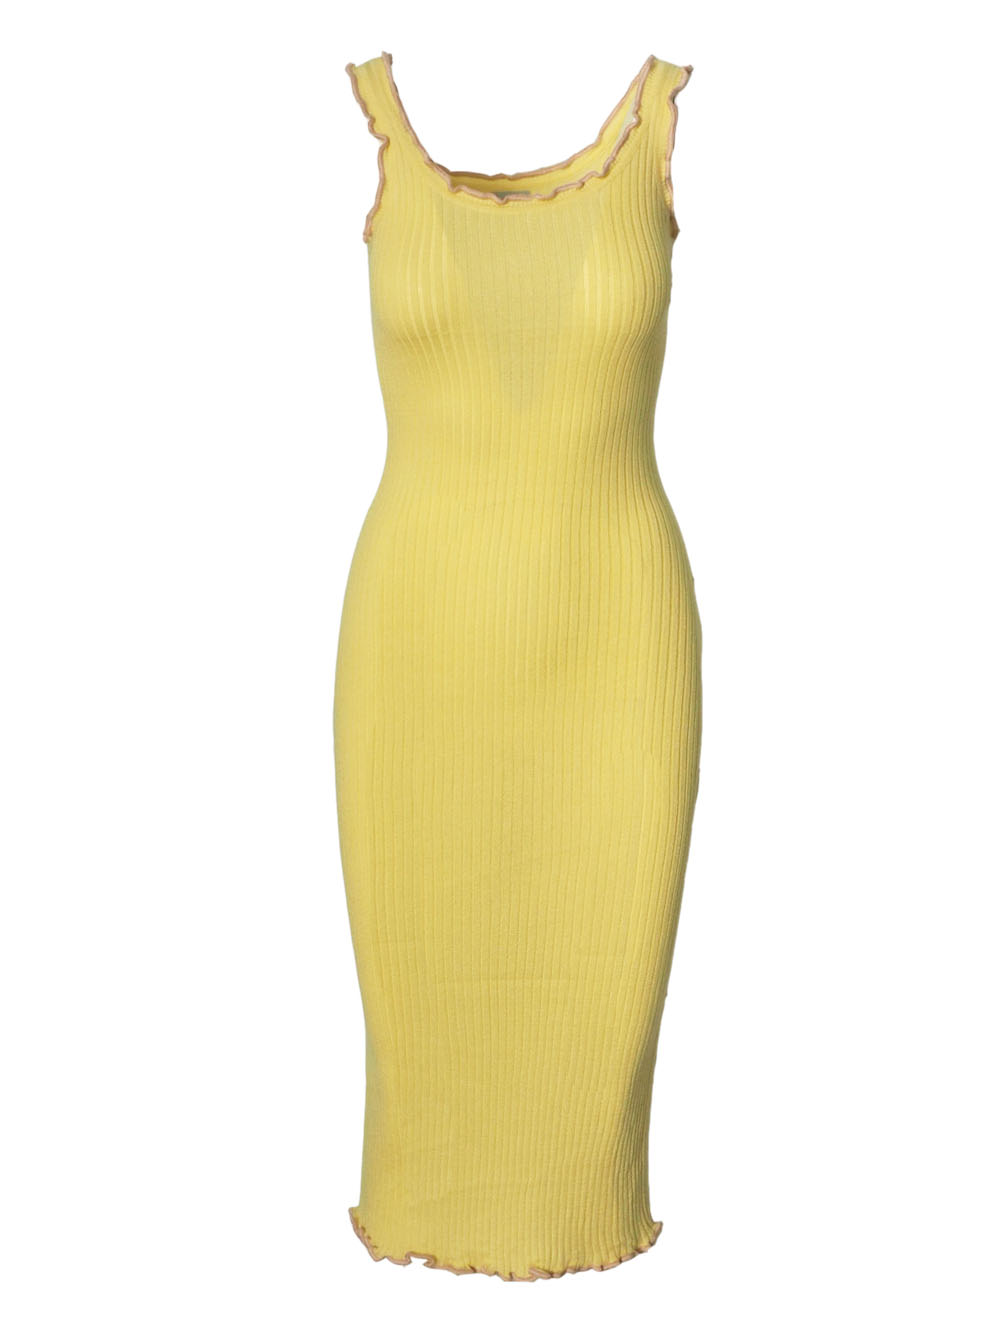 Ajaie Alaie Yellow Dress.jpg